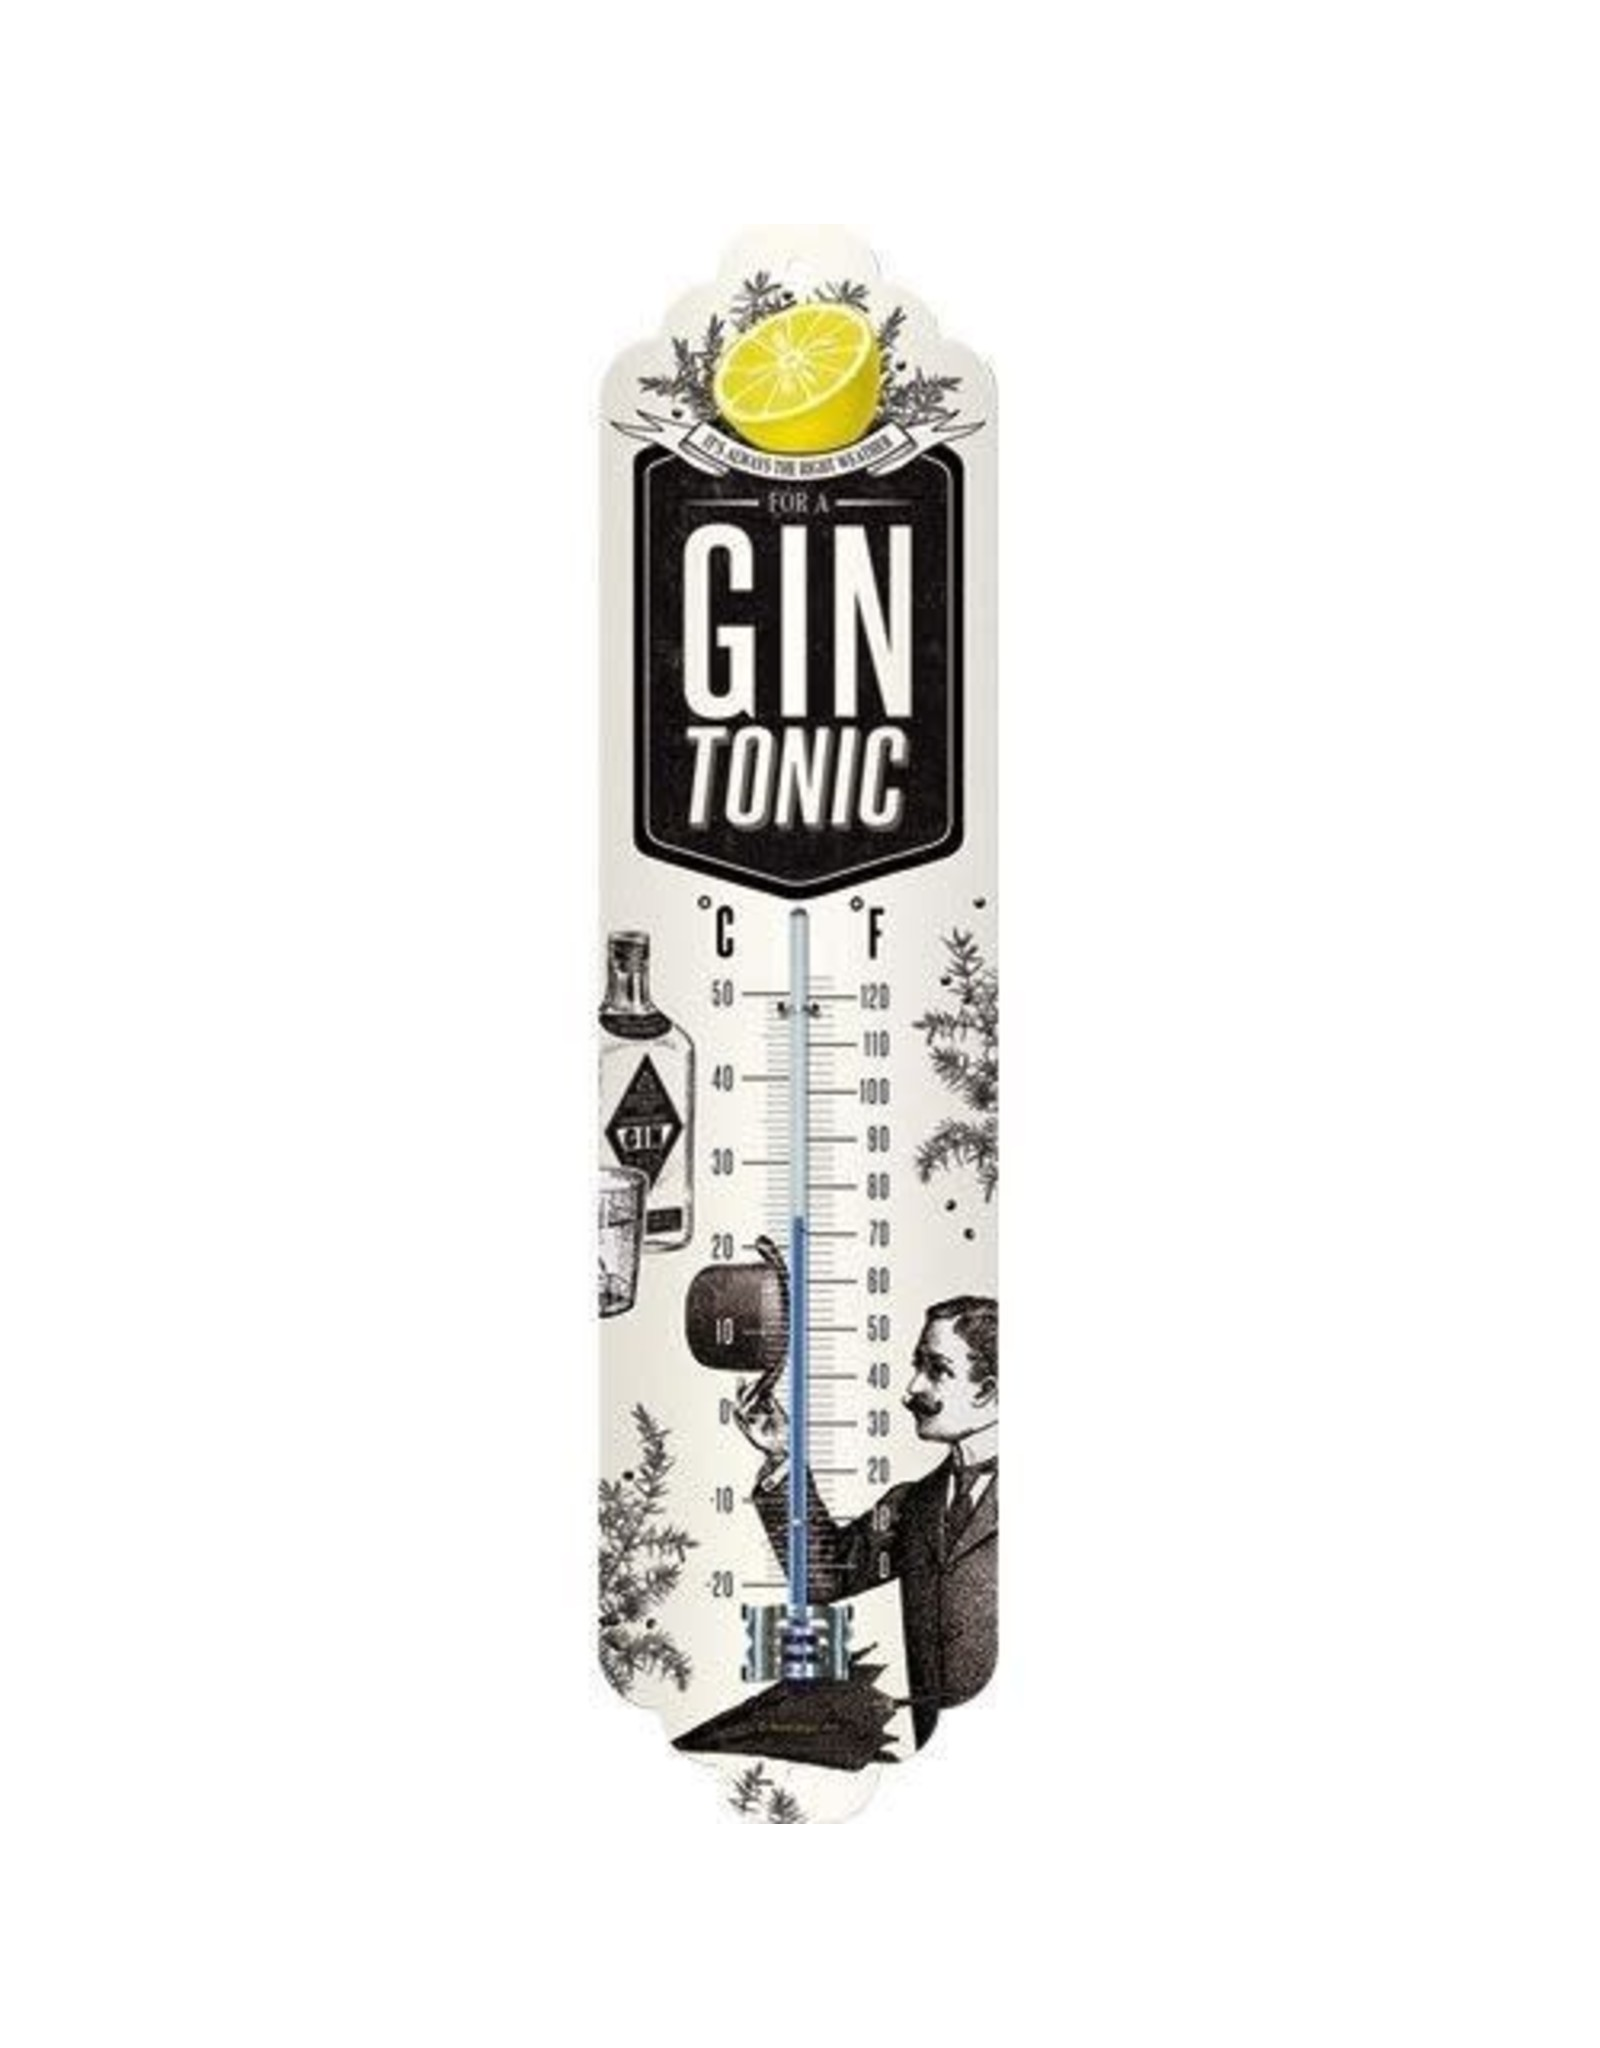 Nostalgic Art thermometer with gin tonic design